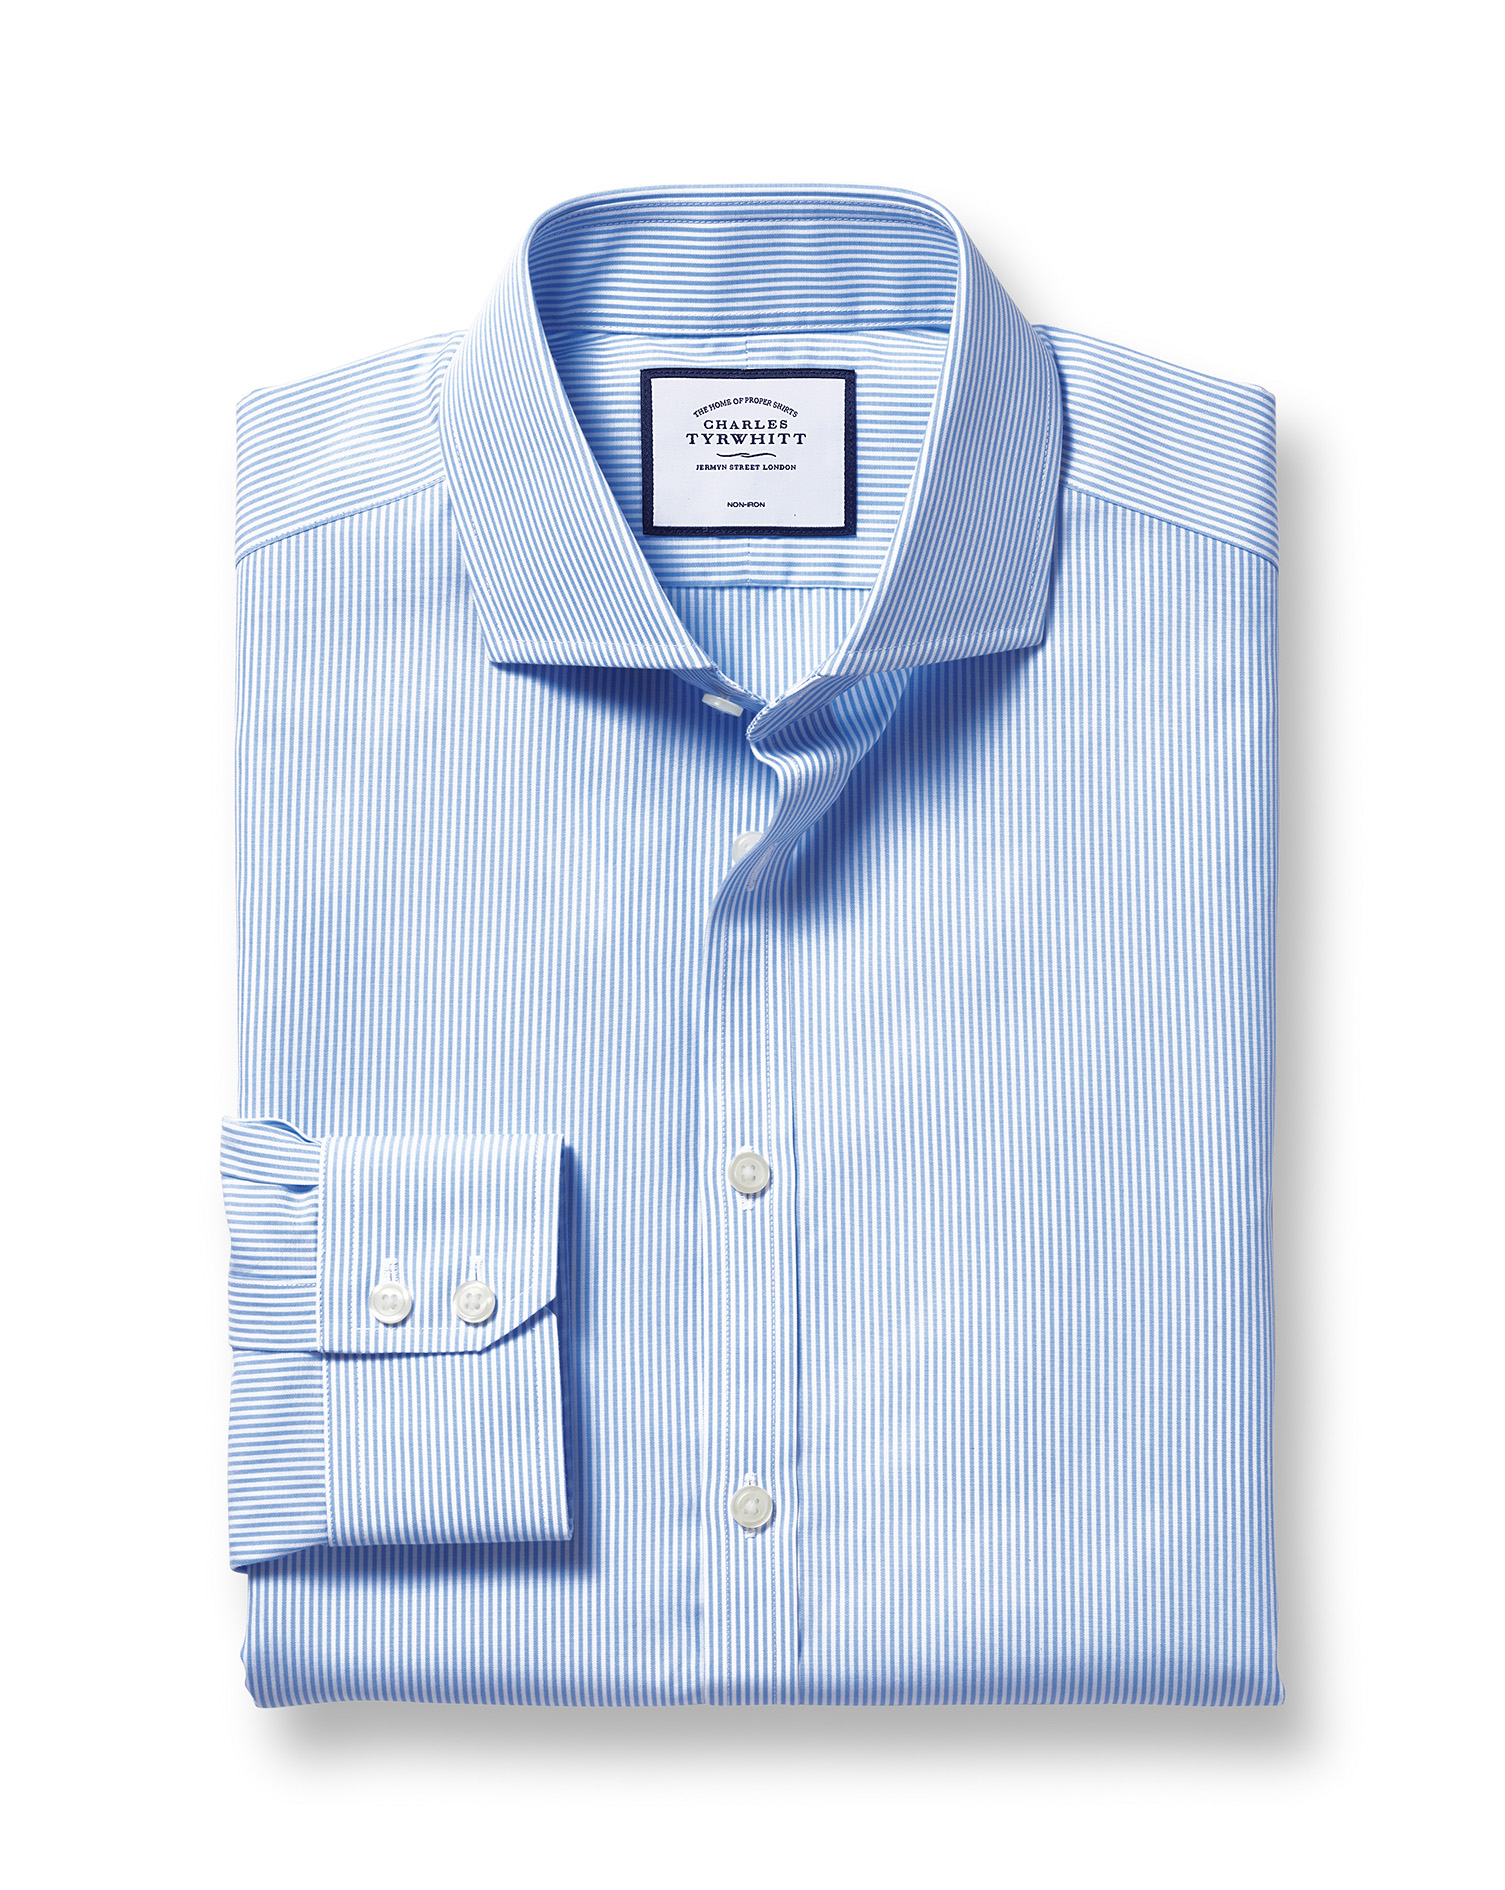 Extra Slim Fit Non-Iron Cutaway Sky Blue Bengal Stripe Cotton Formal Shirt Double Cuff Size 17/35 by